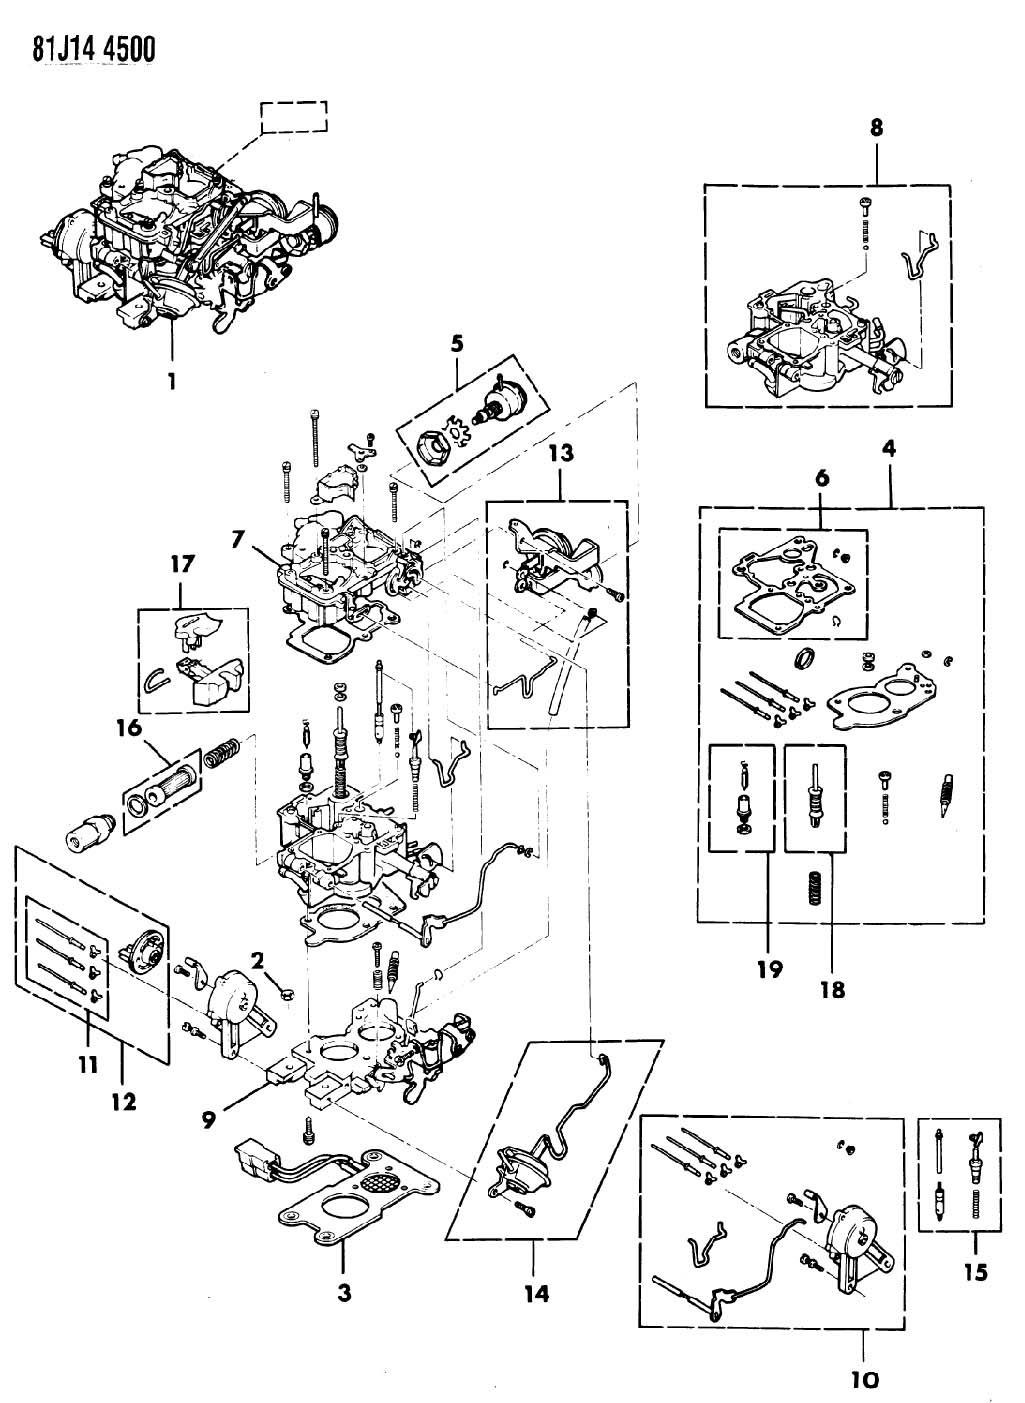 1970 Monte Carlo Front Suspension Diagram Corvair Front